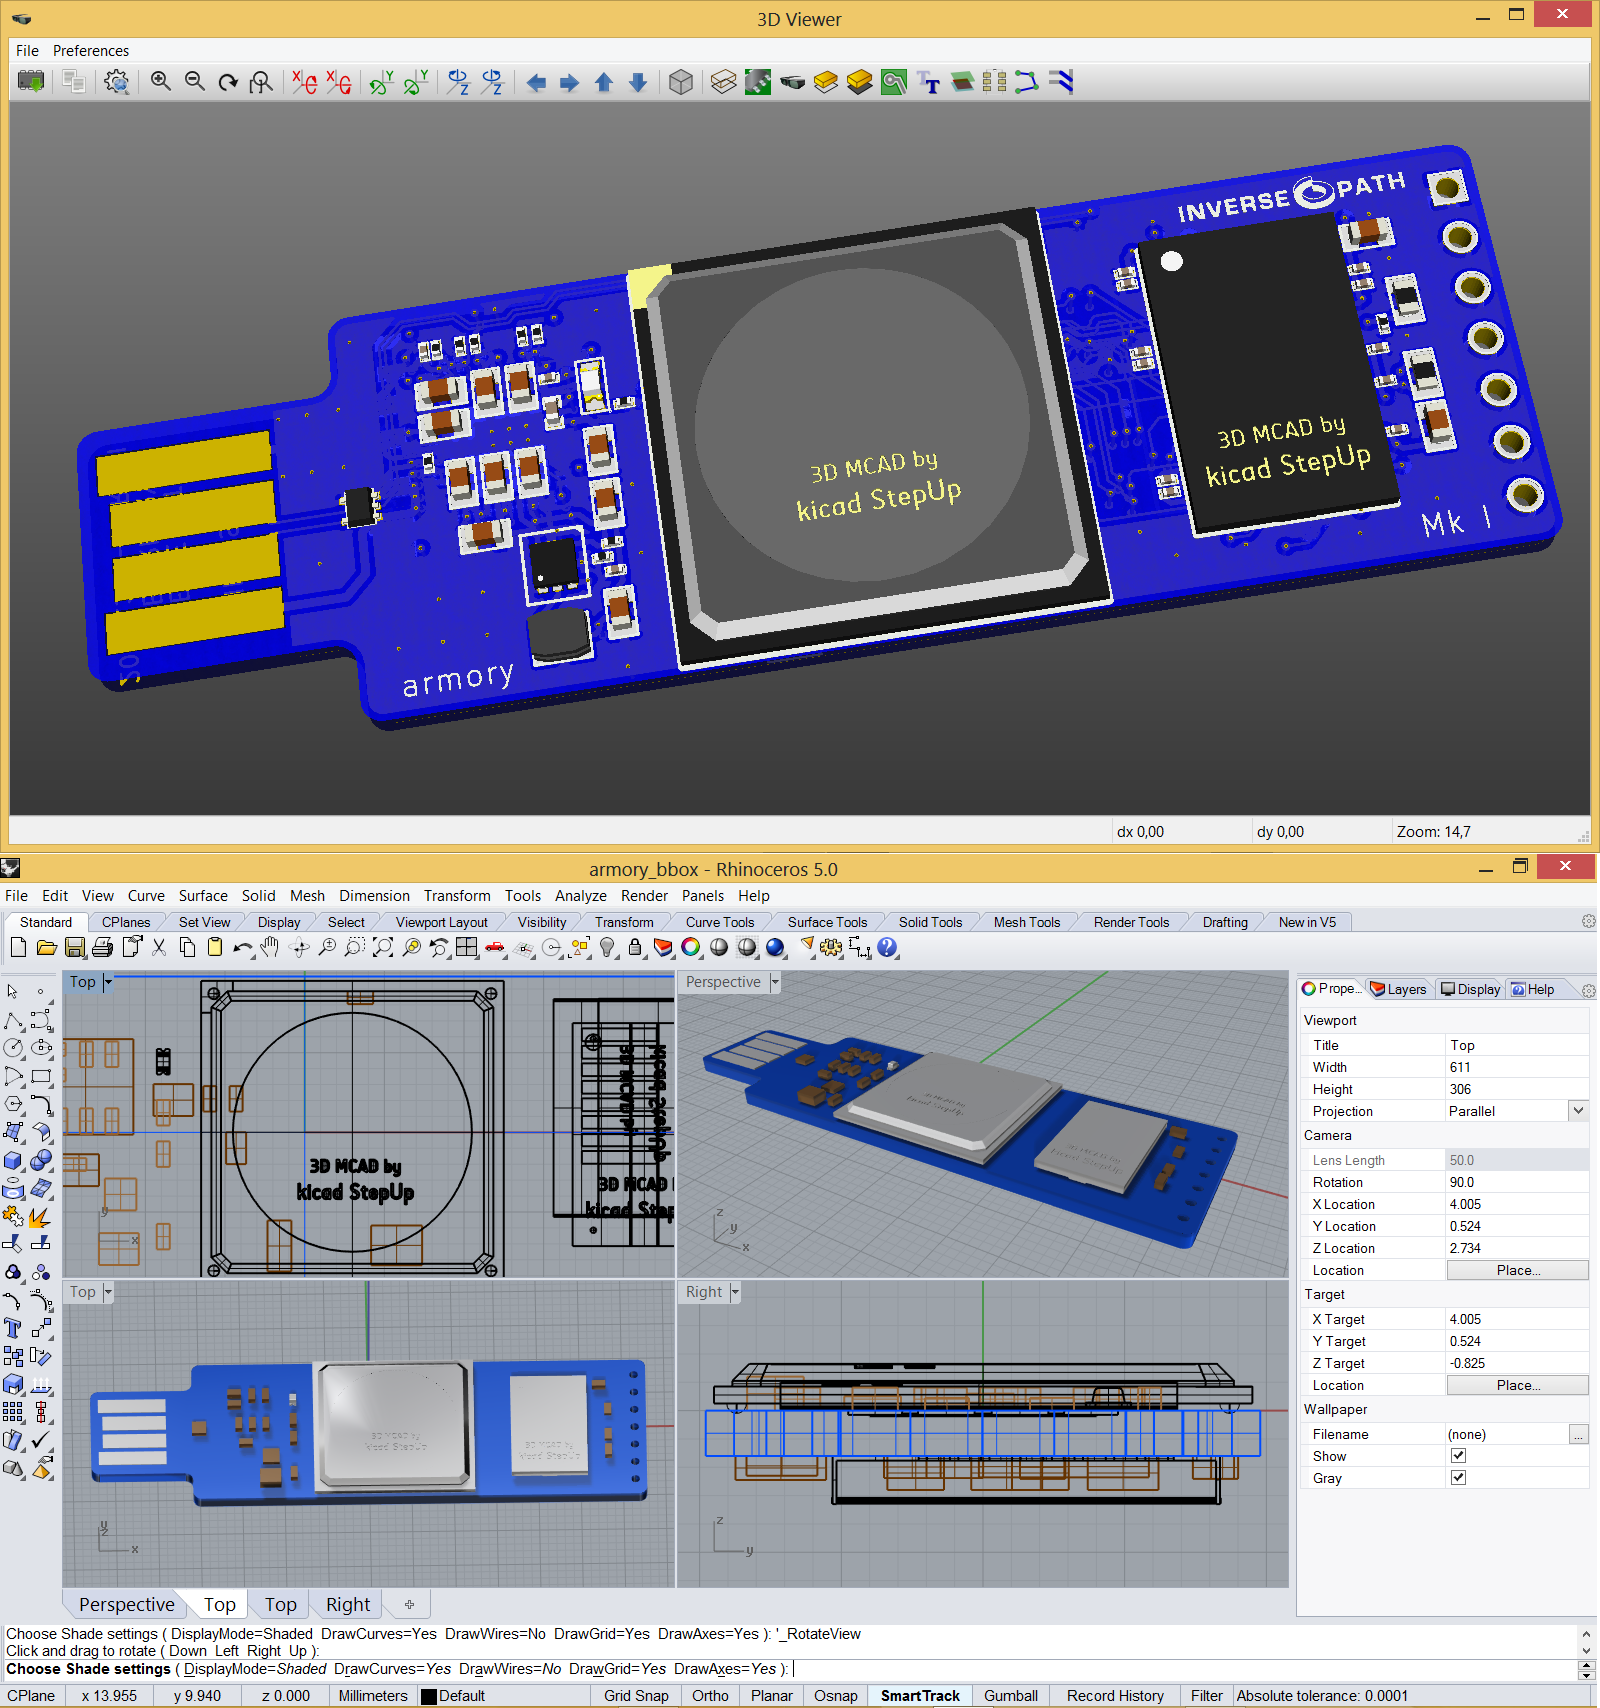 KiCAD photo realistic 3D rendering? - Page 1